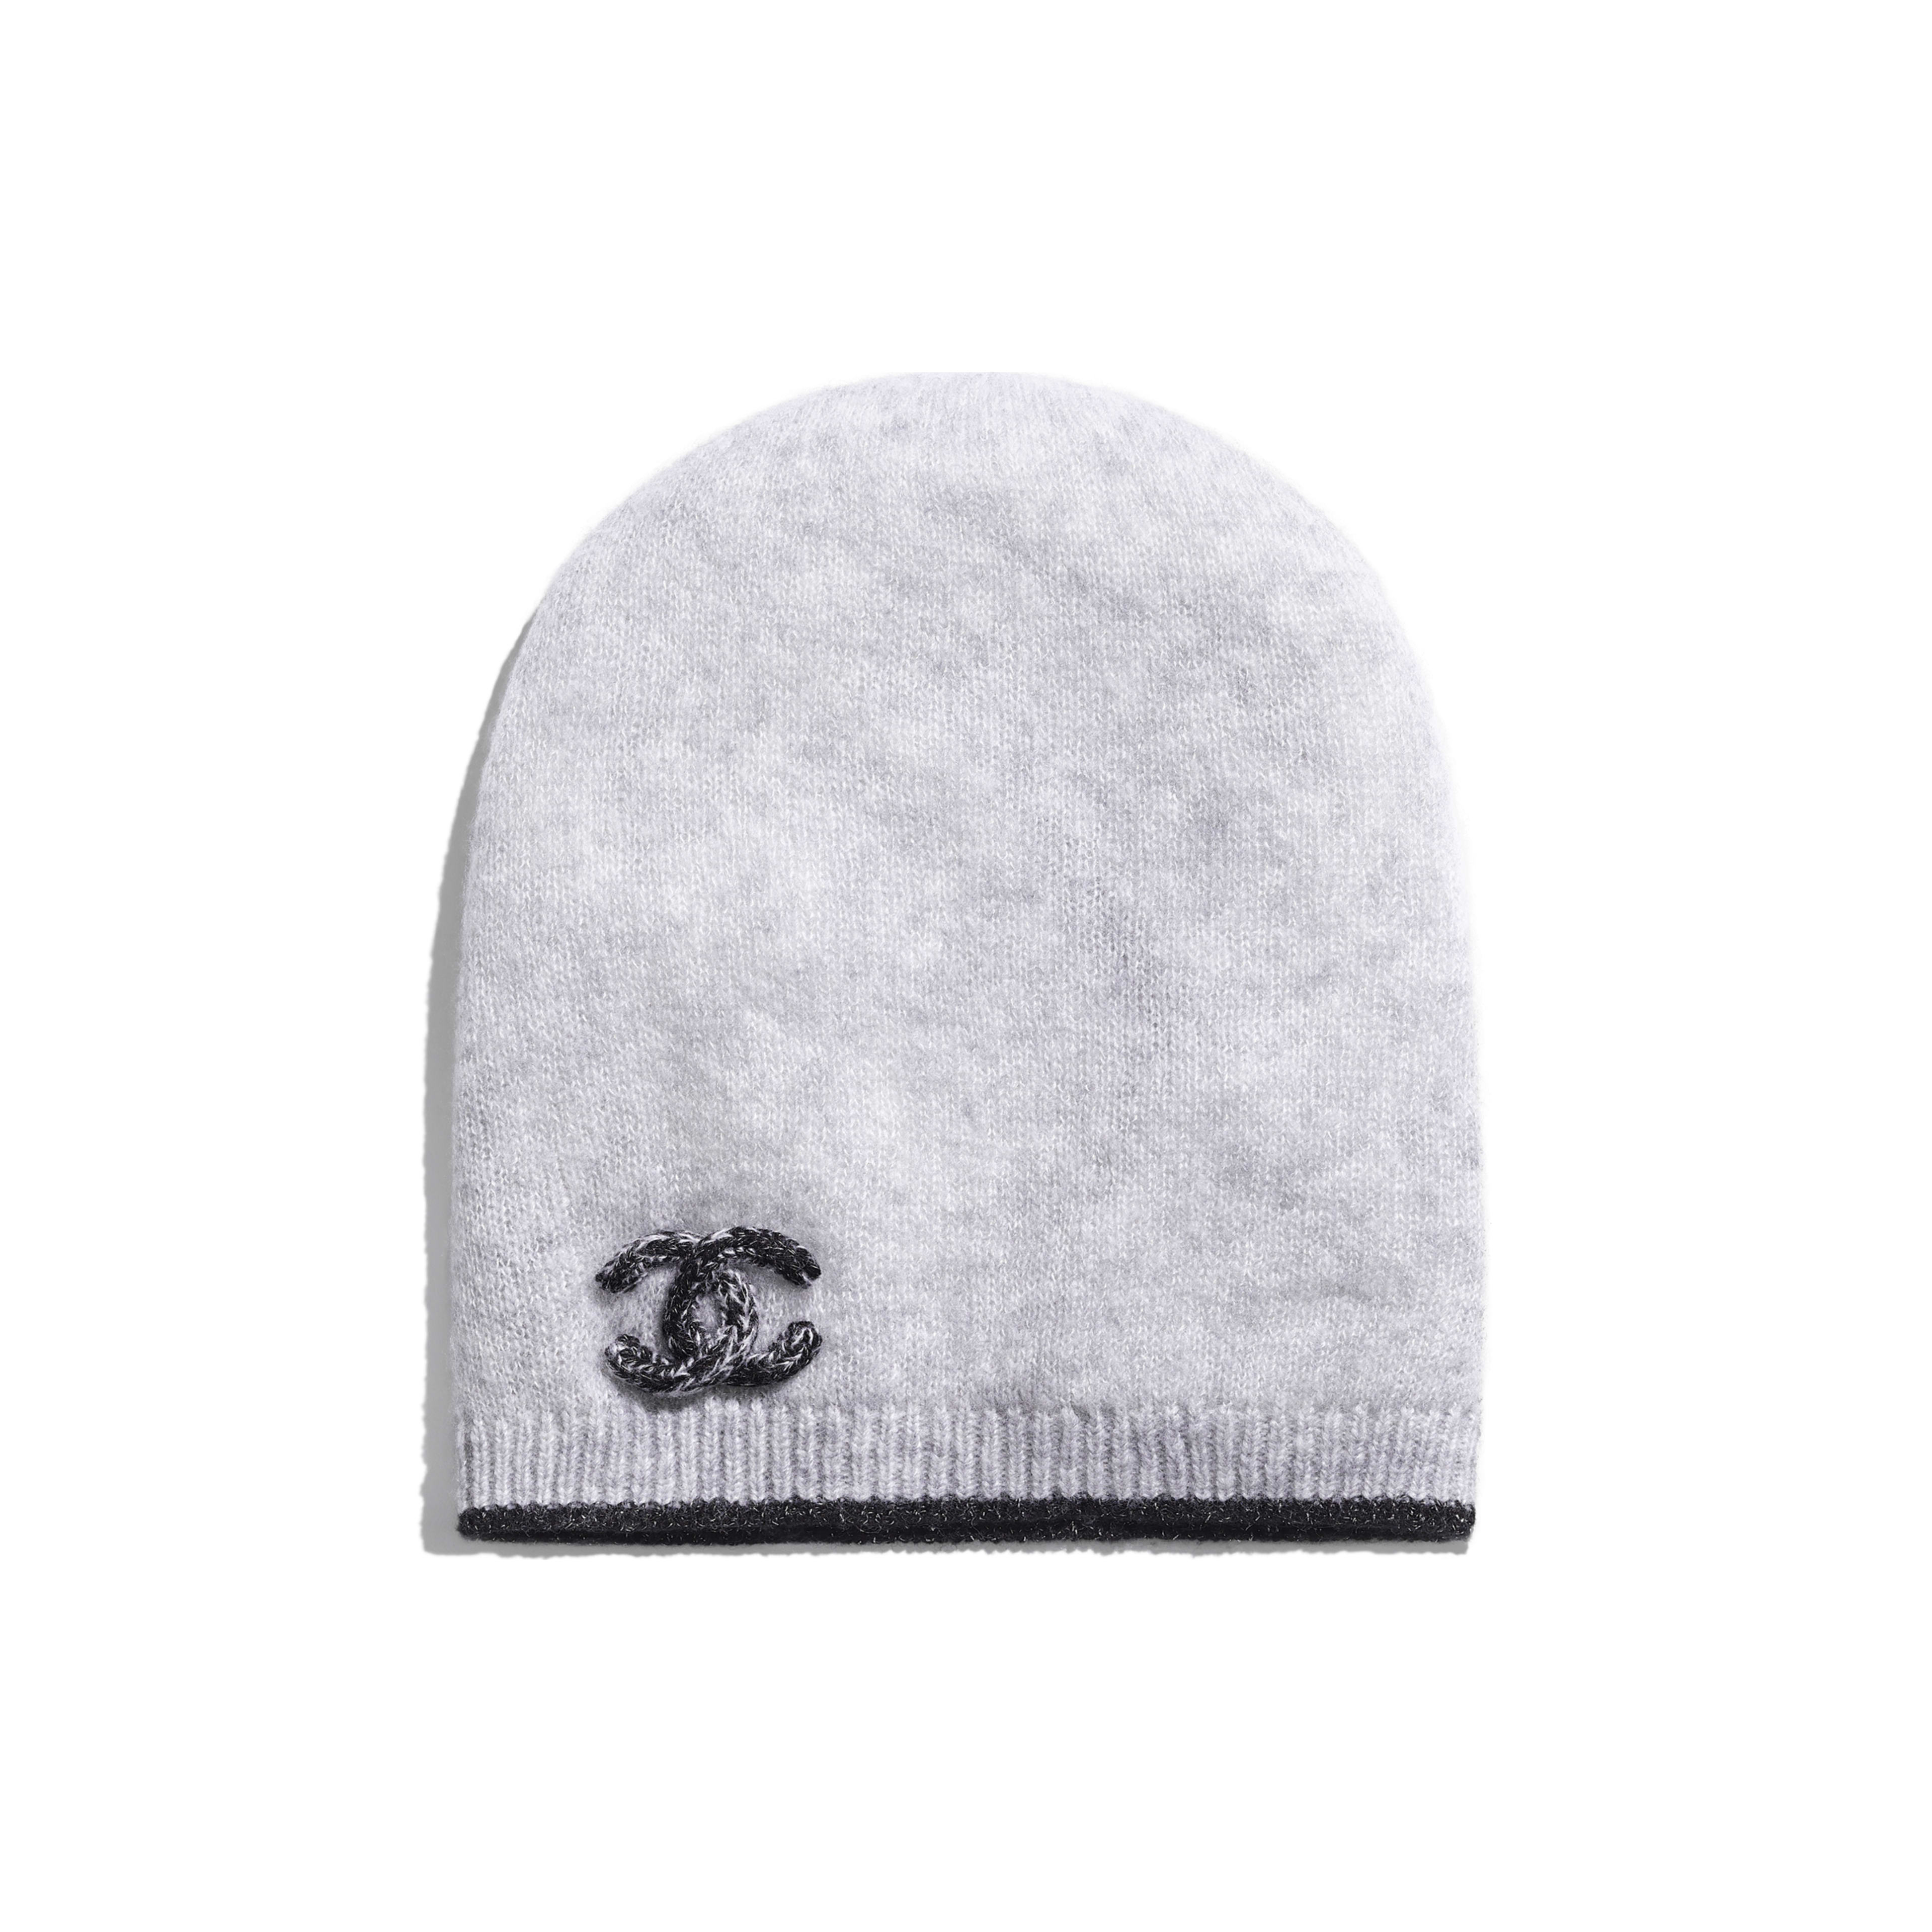 Beanie - Grey - Cashmere & Silk - Default view - see full sized version